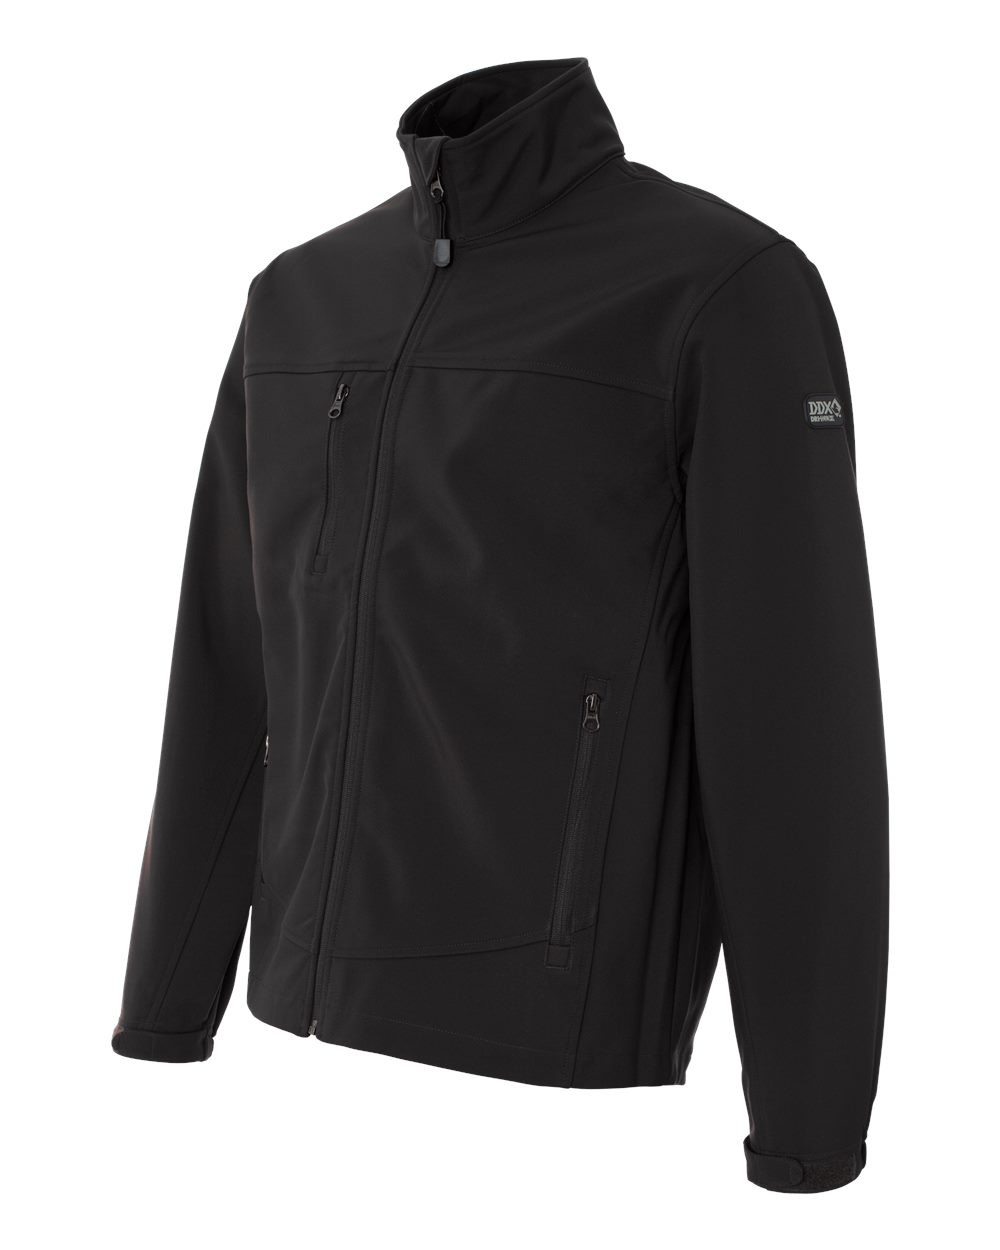 DRI DUCK 5350T - Motion Soft Shell Jacket Tall Sizes